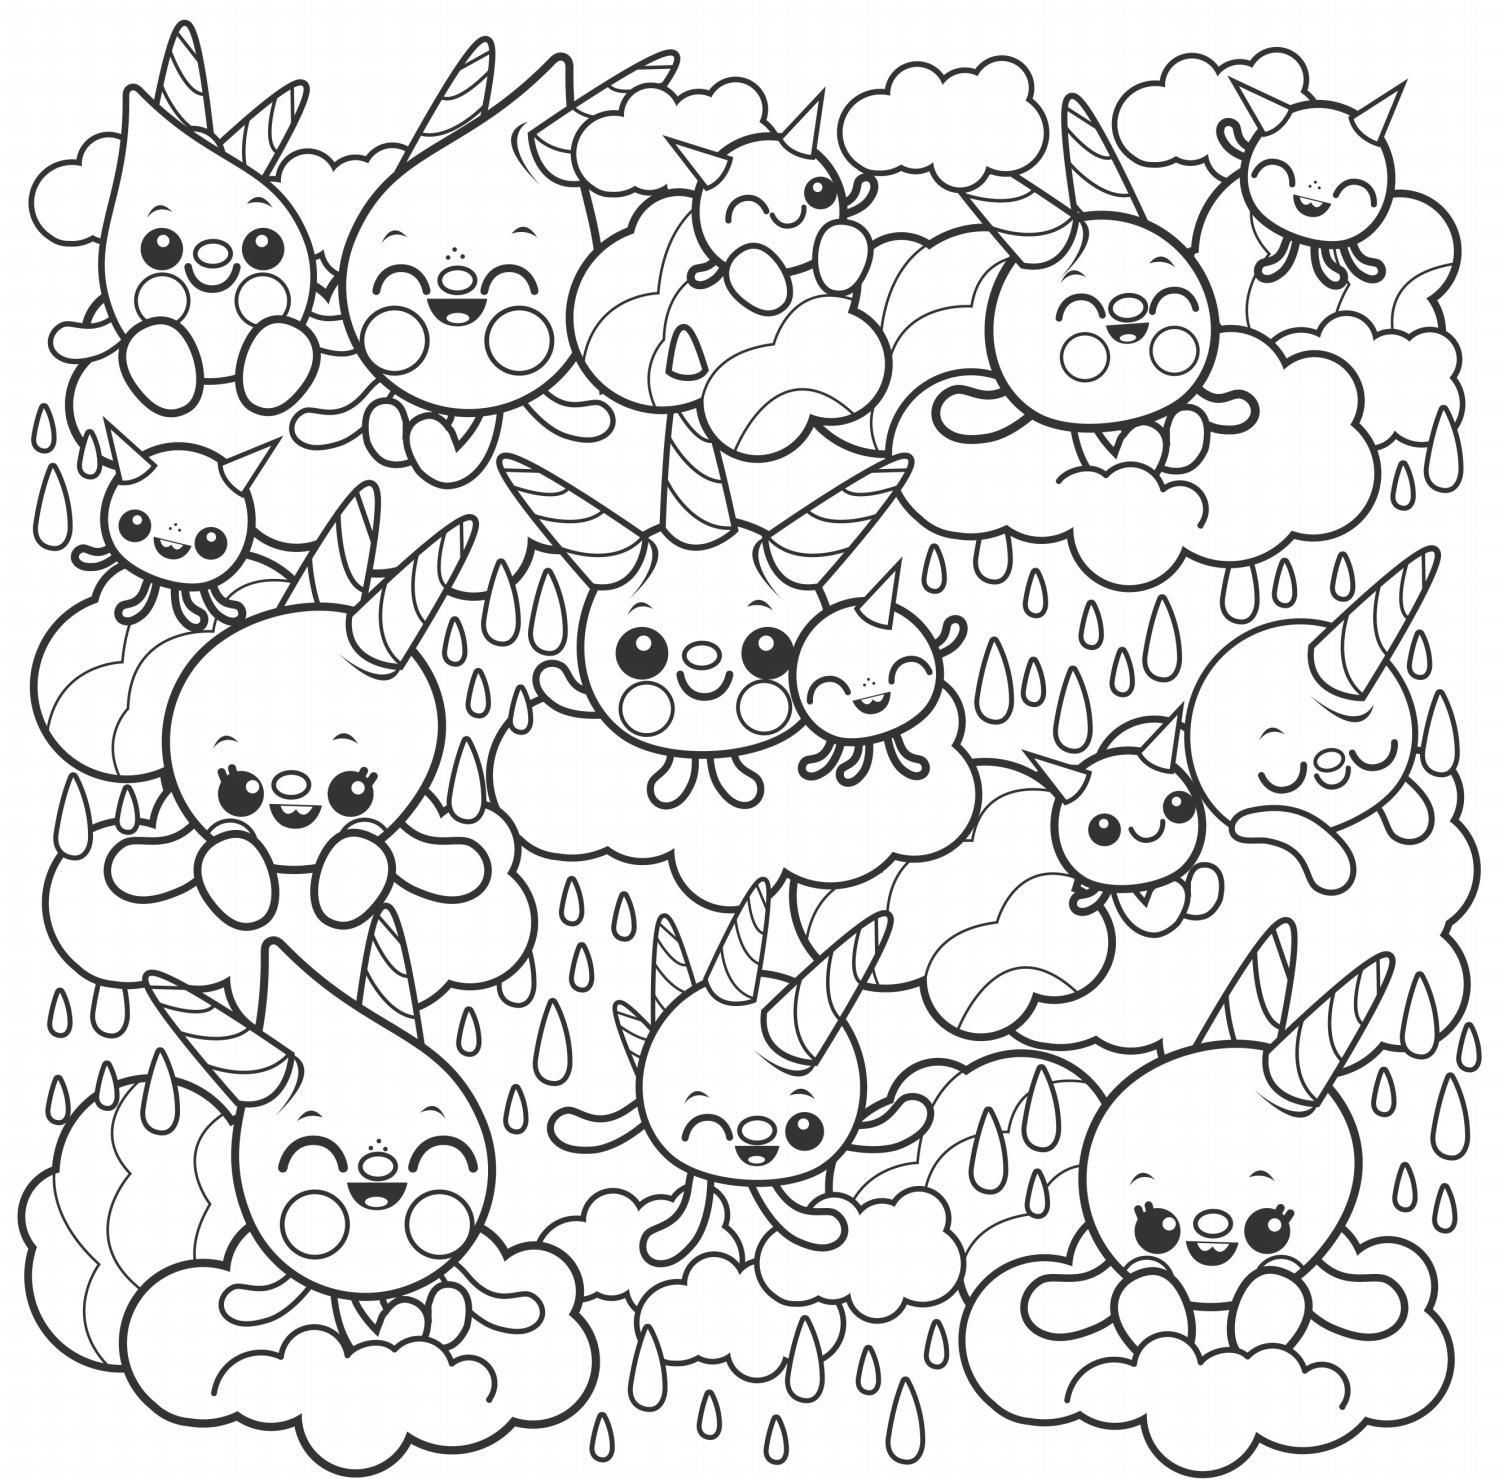 Super Cute Coloring Book Coloring Books Drawing Challenge Coloring Pages